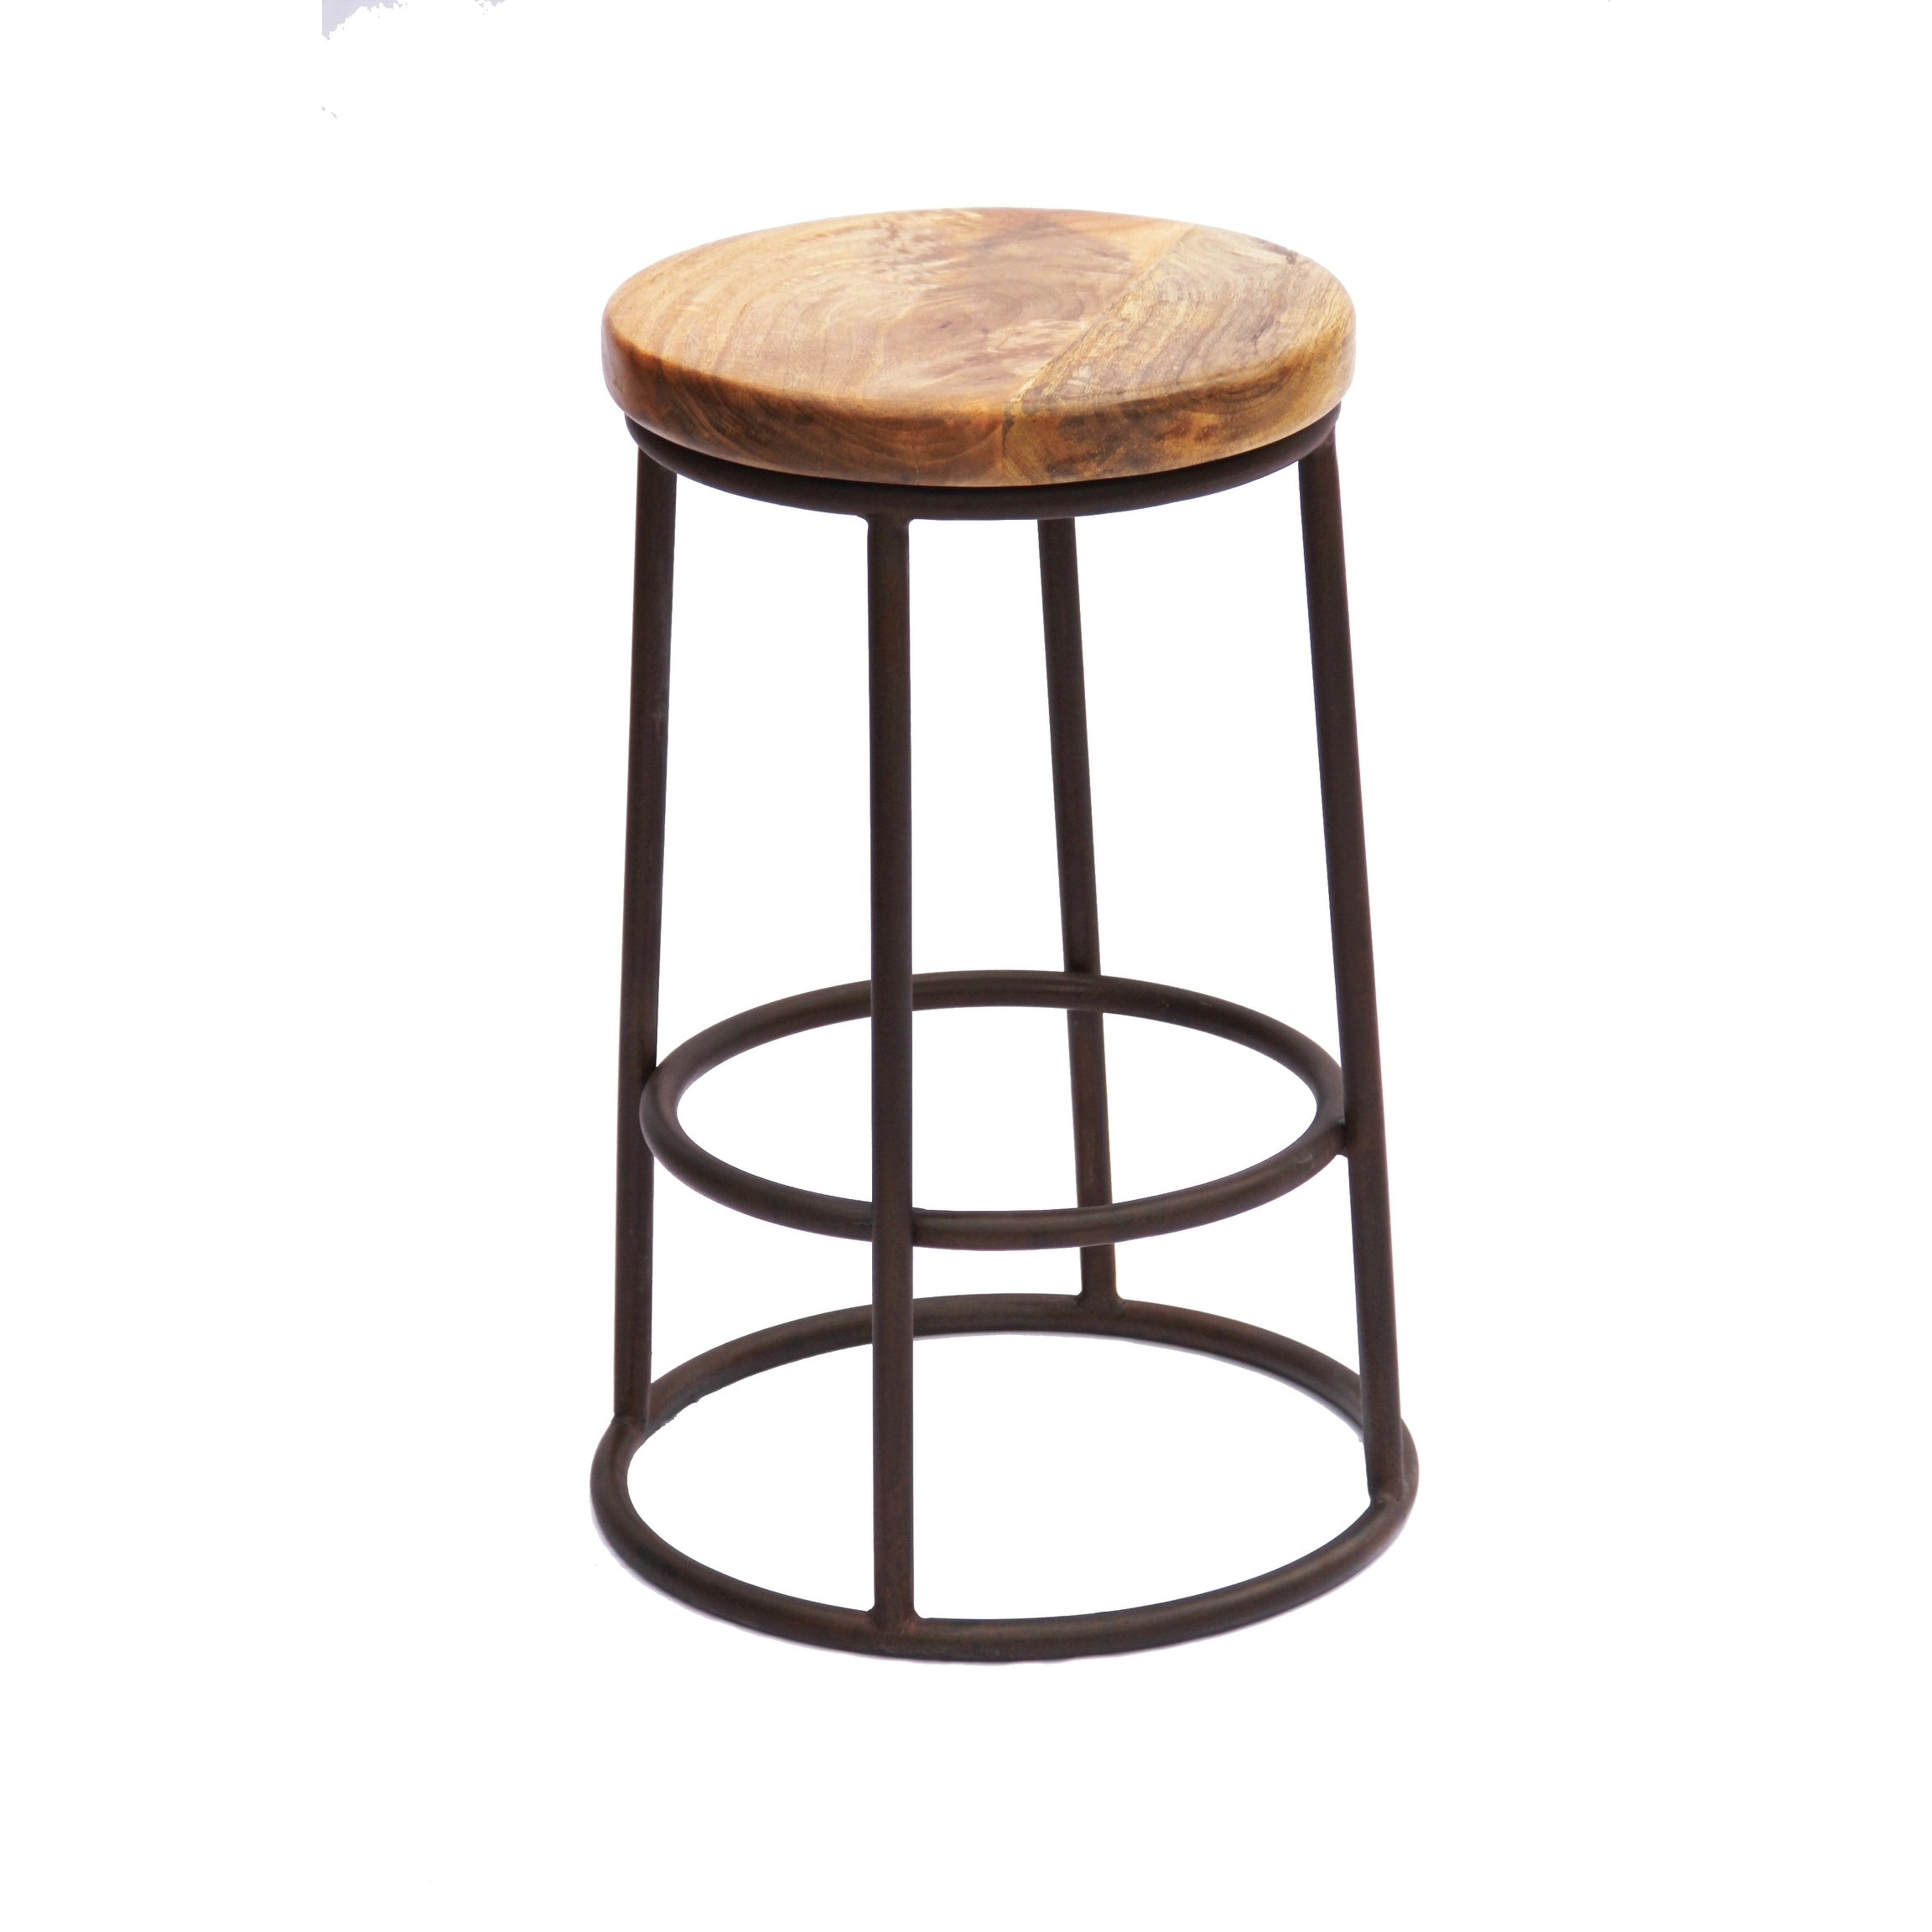 Cool The Urban Port Wooden 24 Inch Circular Counter Height Bar Stool With Metal Base Brown And Black Creativecarmelina Interior Chair Design Creativecarmelinacom